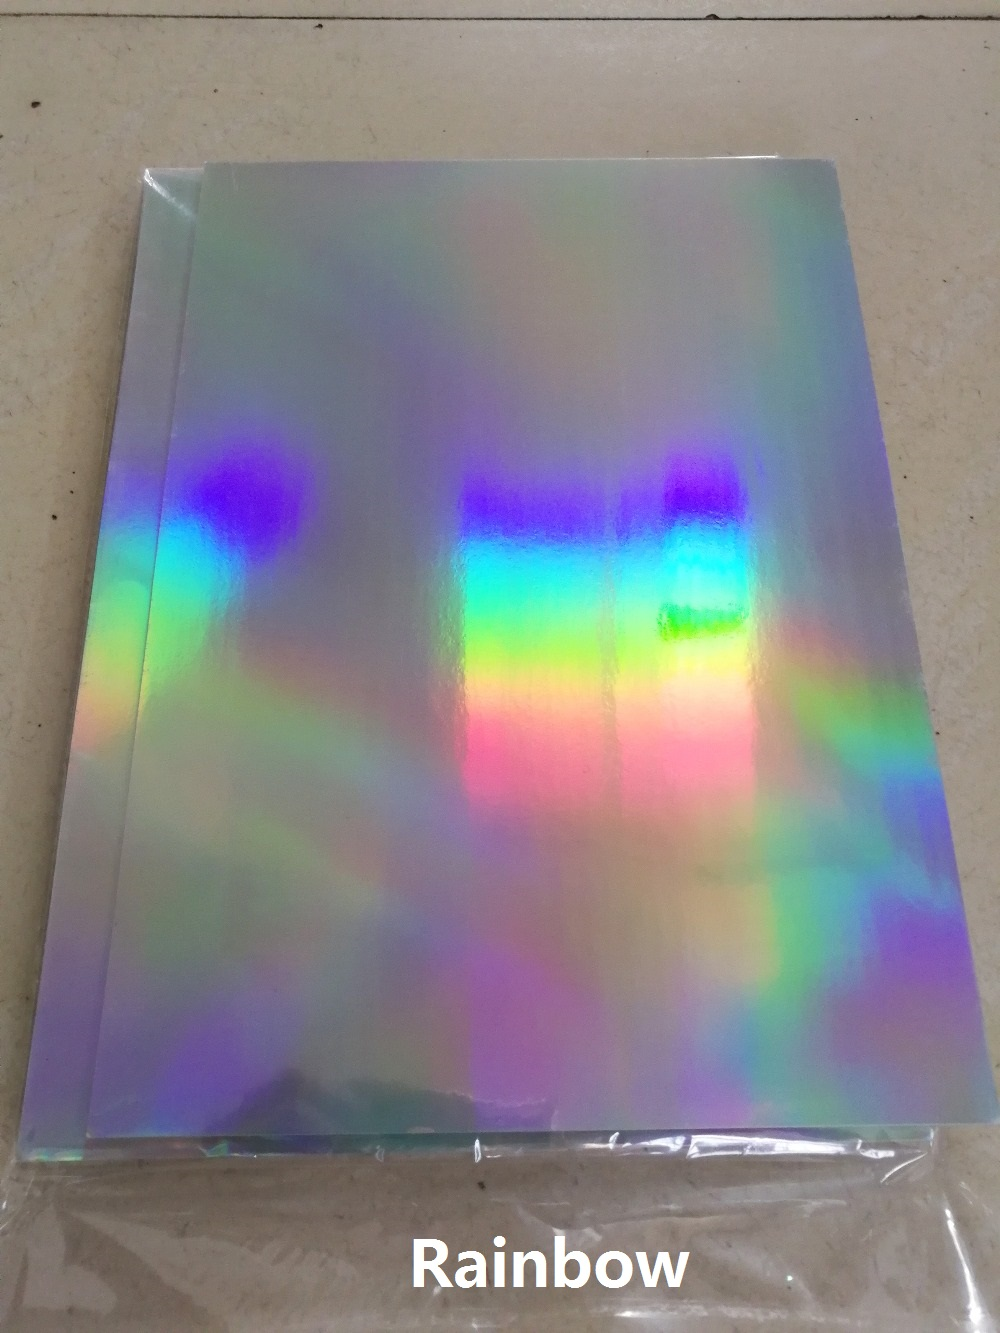 10pcs A4 Holographic Rainbow Glossy Mirror Self Adhesive Vinyl Film Label Sticker For Scrapbooking Paper Craft